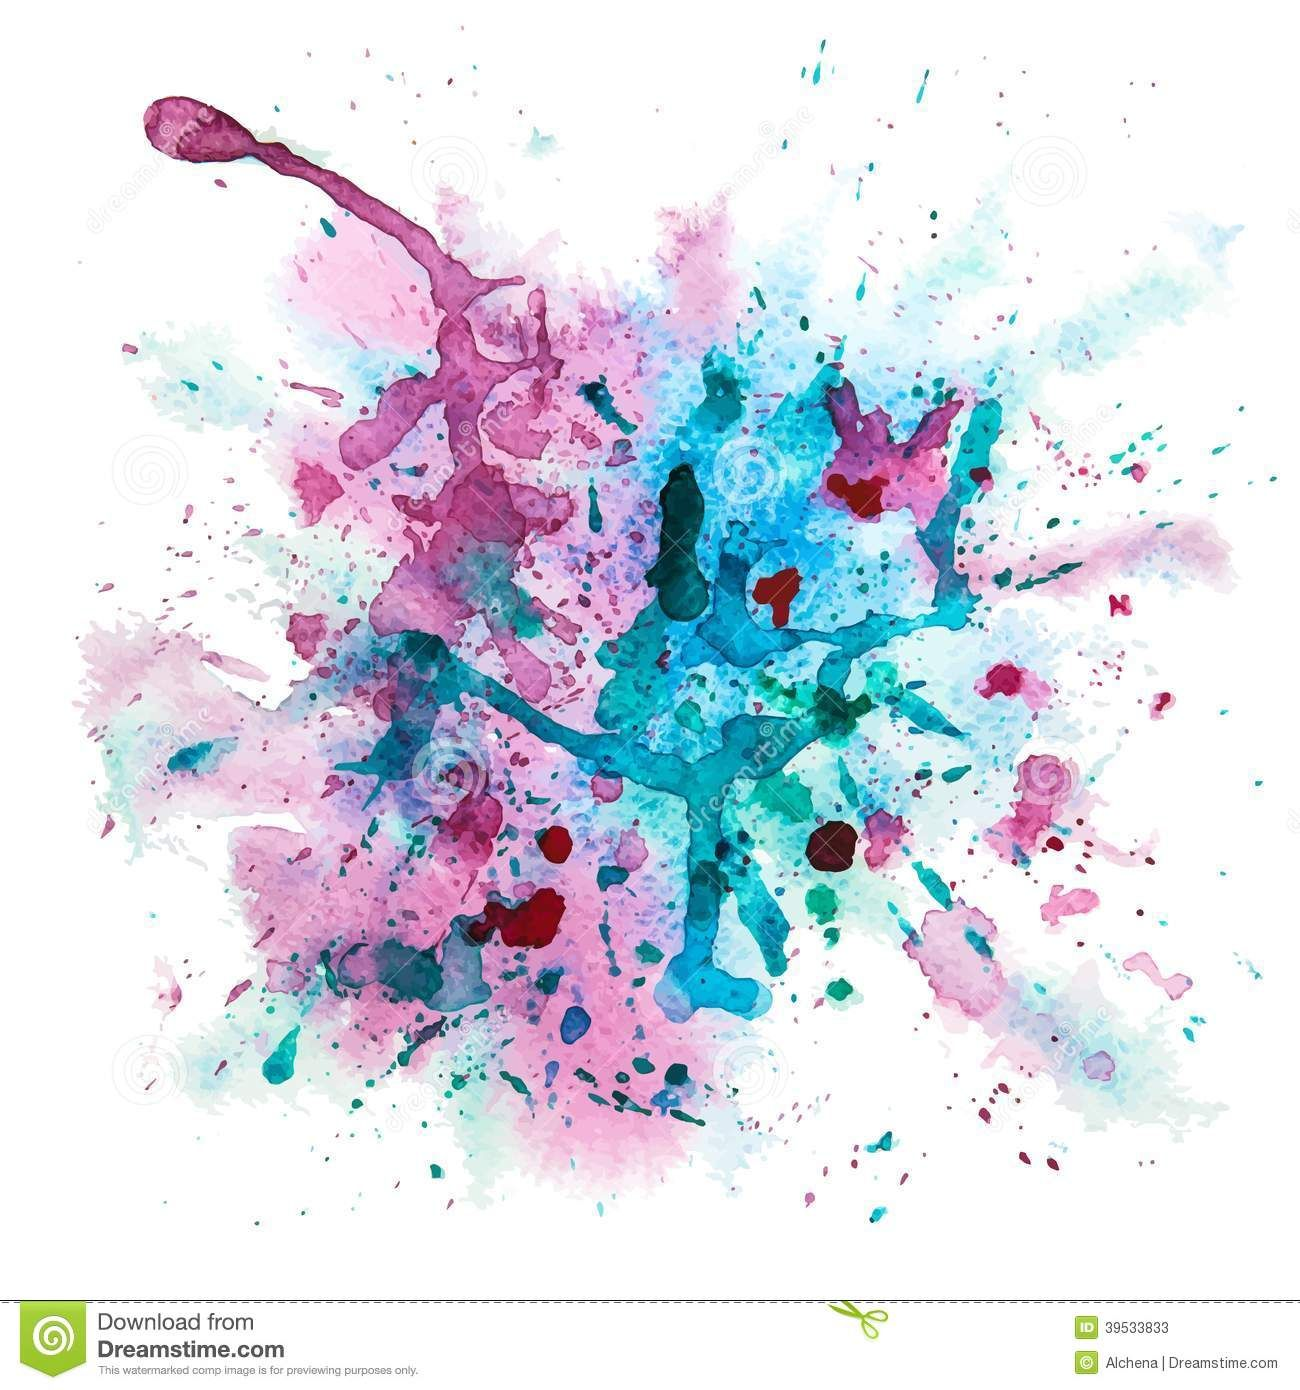 Multicolor Watercolor Splash Download From Over 35 Million High